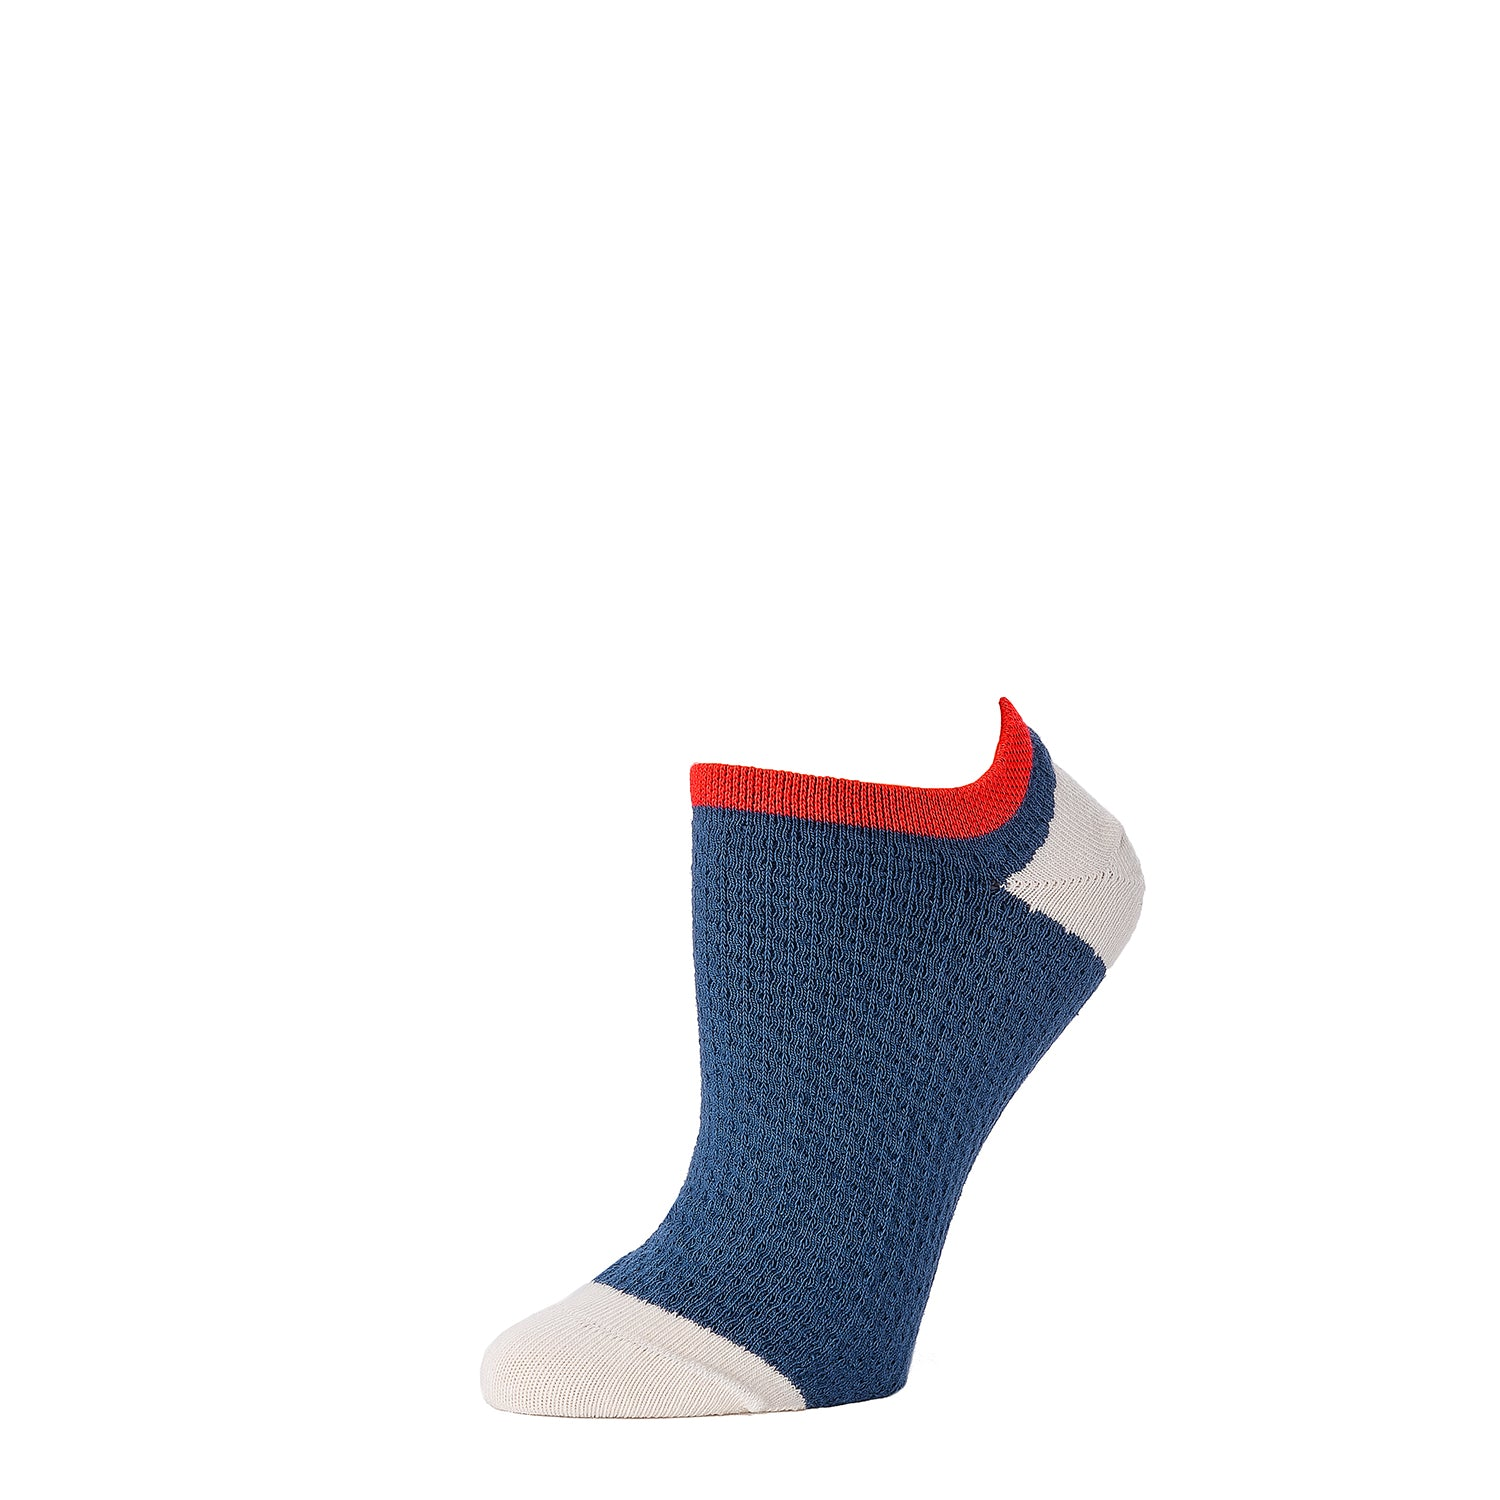 Mini Cable Knit Footie- Navy + Natural